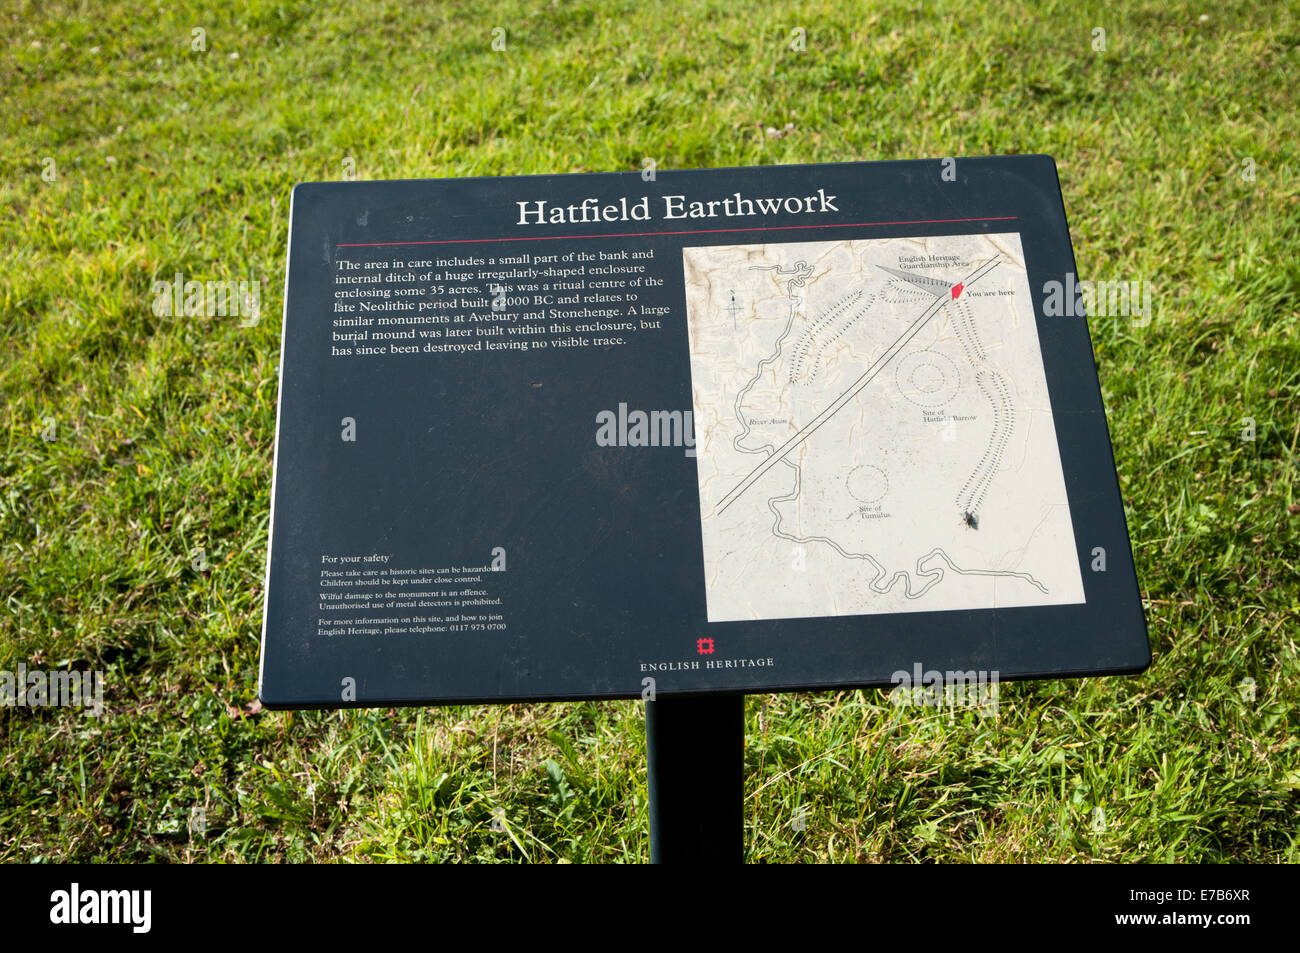 English Heritage information board for the Neolithic Hatfield earthwork site at Marden, Wiltshire, England - Stock Image